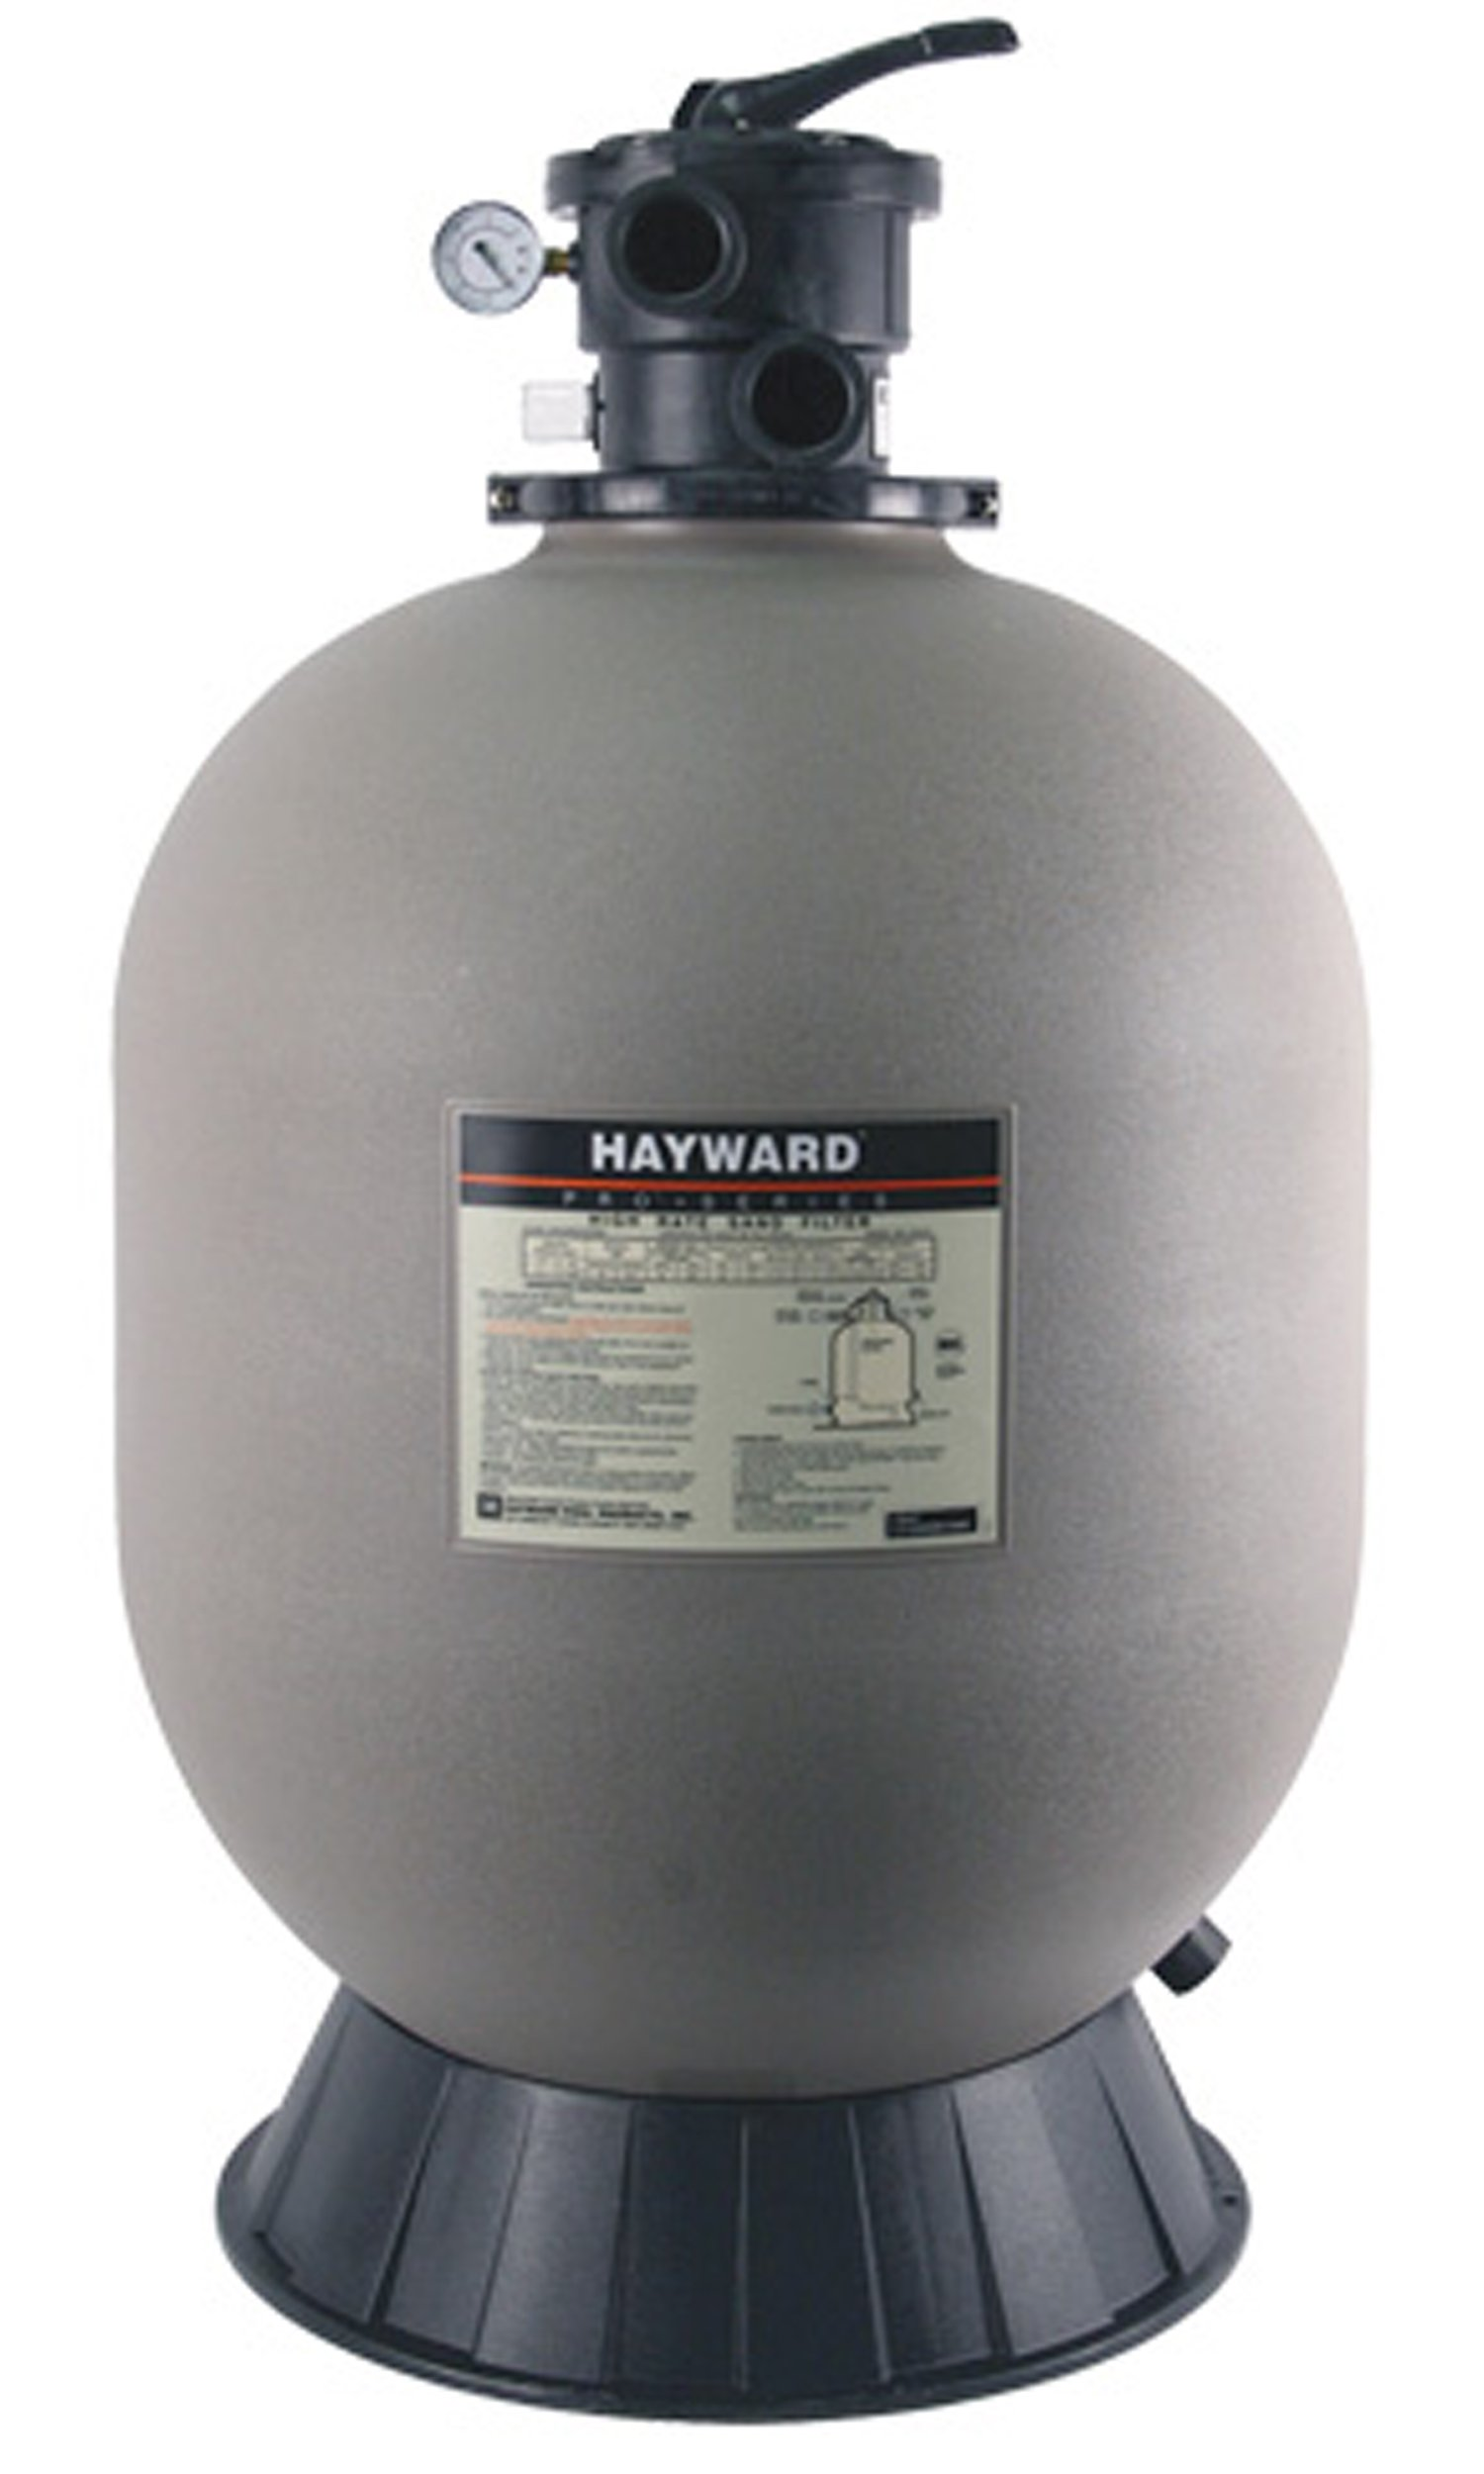 Hayward S244T ProSeries 24'' In- Ground Sand Pool Filter by Hayward